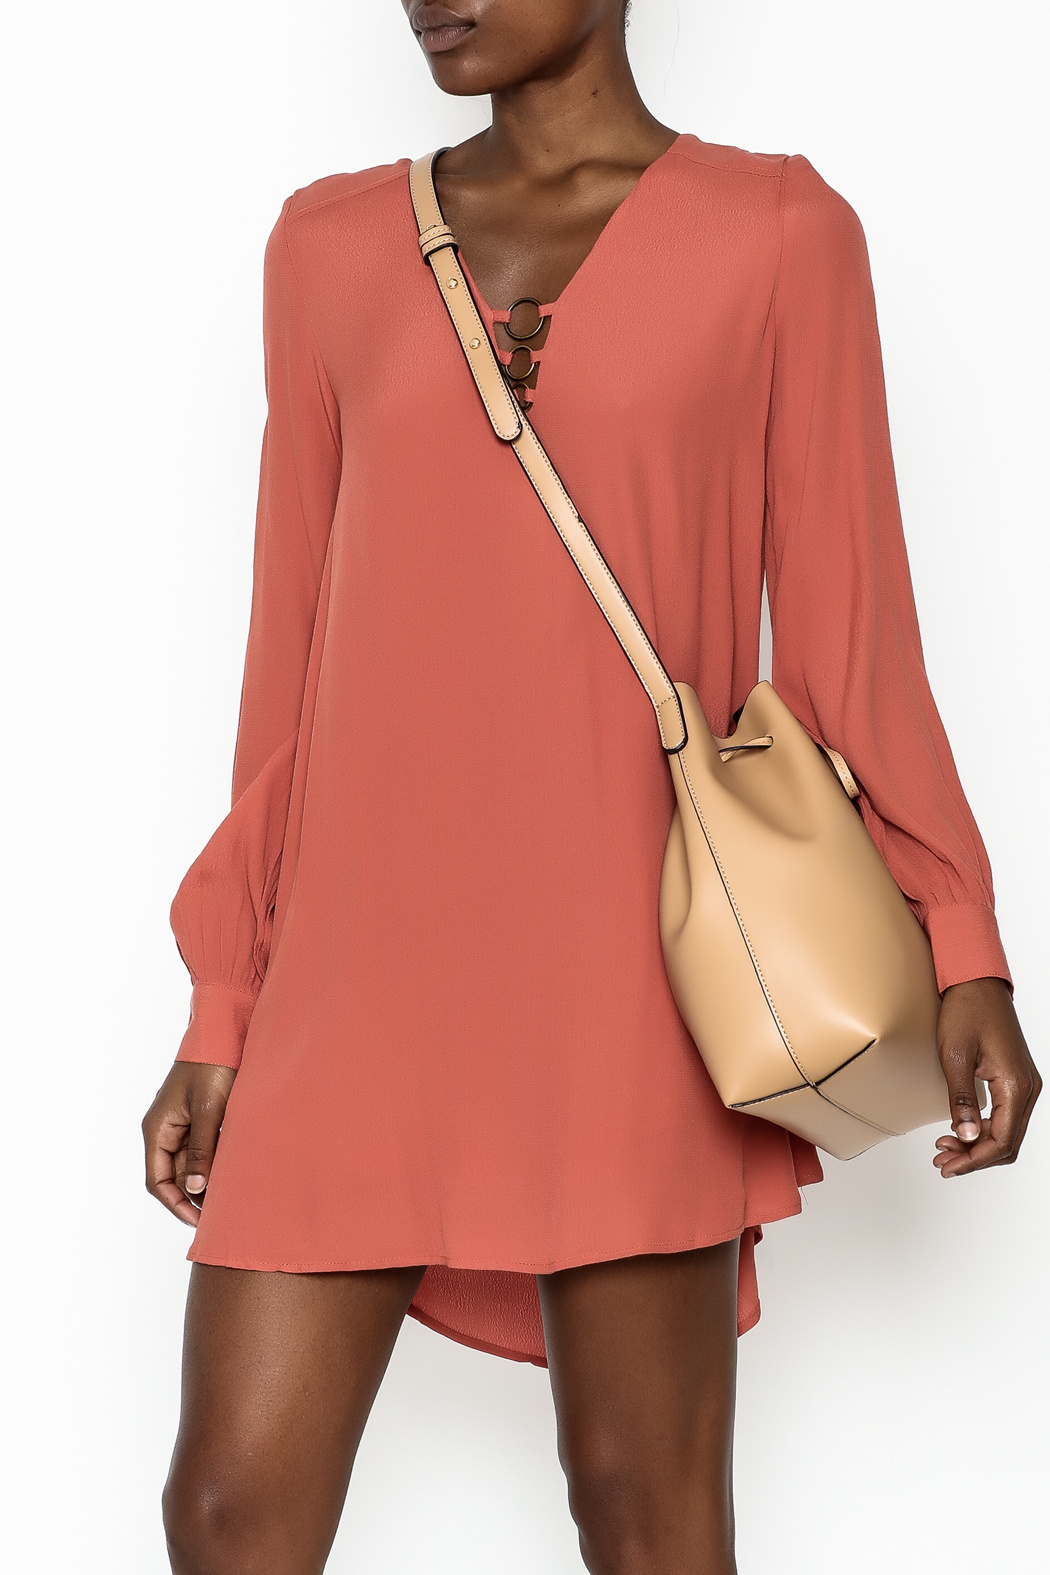 LoveRiche Burnt Orange Dress - Main Image